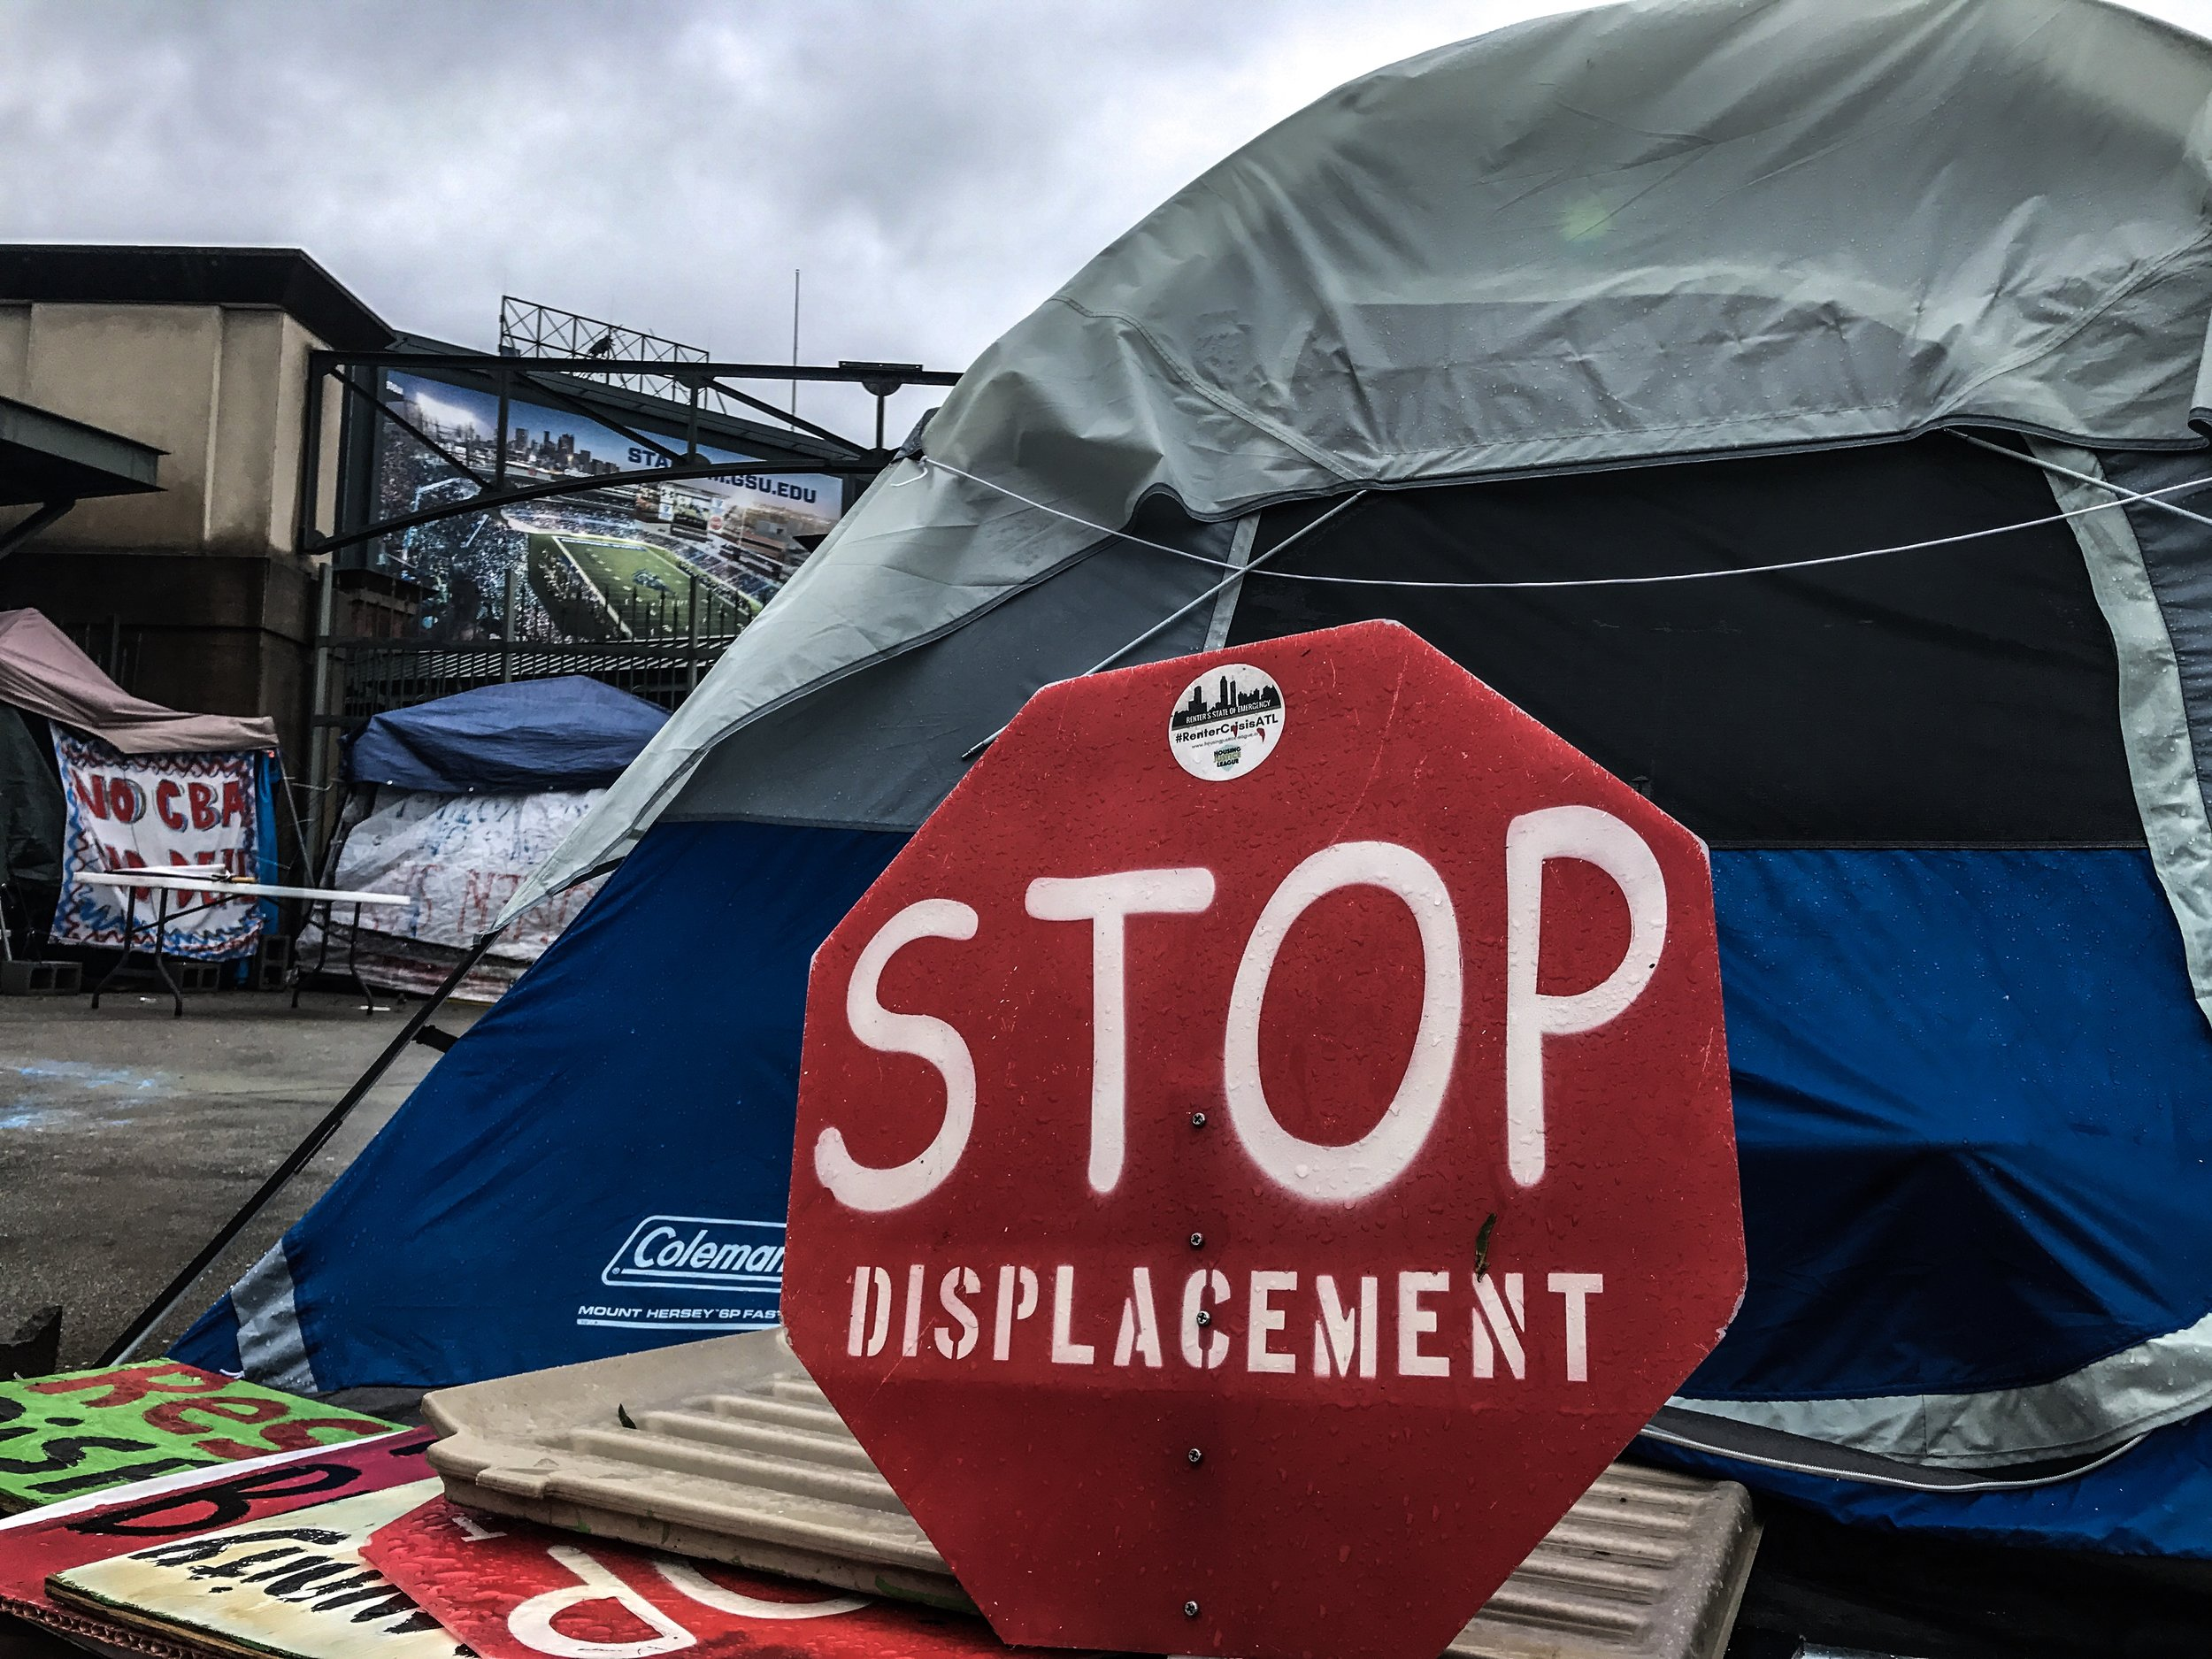 Outside the Atlanta Braves stadium, a statement by local long-time residents, people of color, who were being displaced by the re-zoning of the city in favor of upscale economic development.